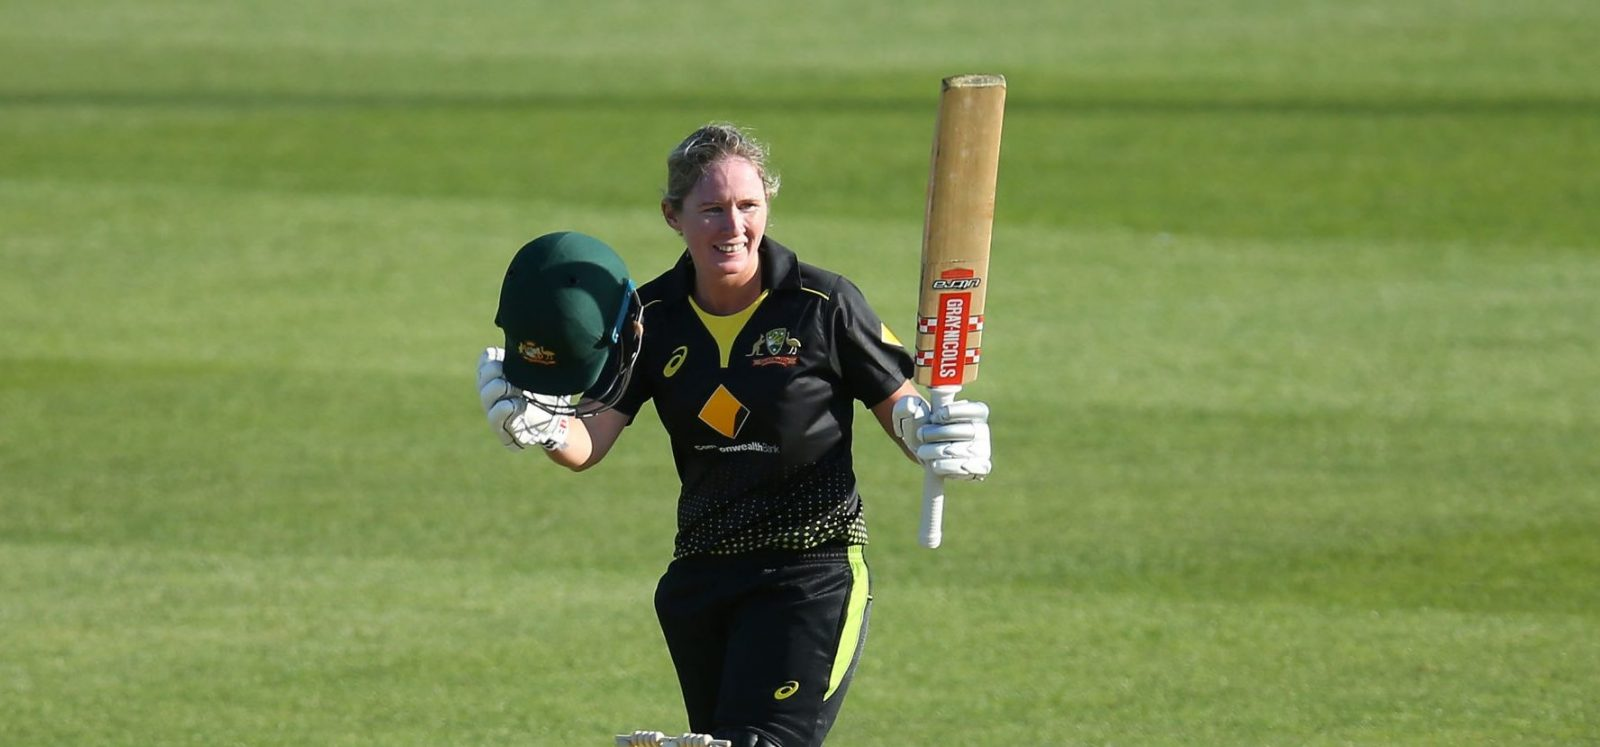 Beth Mooney notched up her second T20I century. © Getty Images